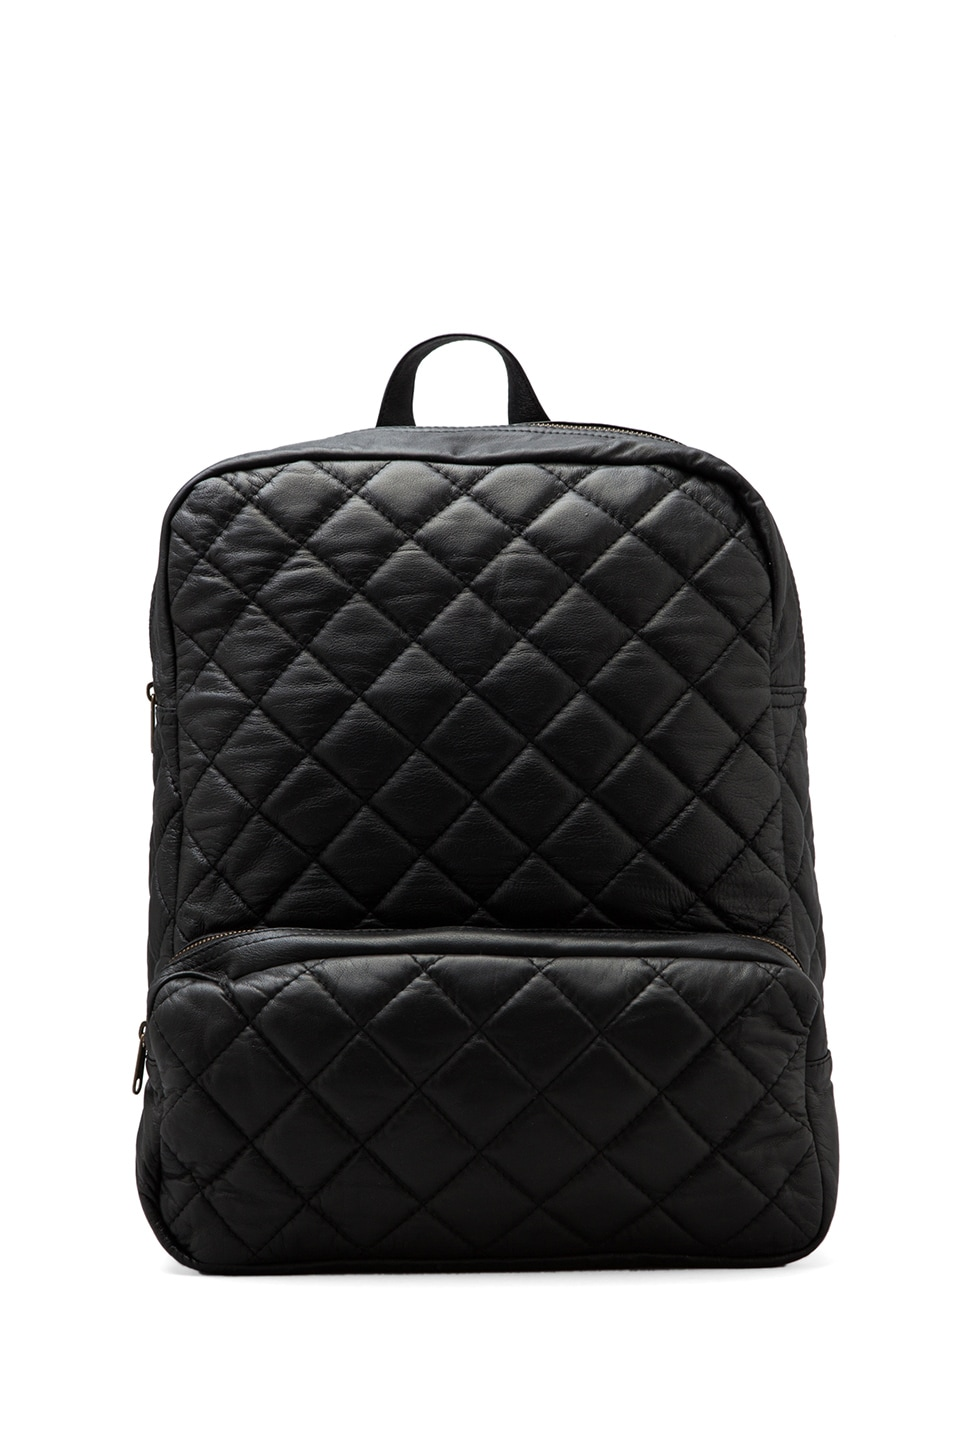 Elliott Label The Quilted Backpack in Black